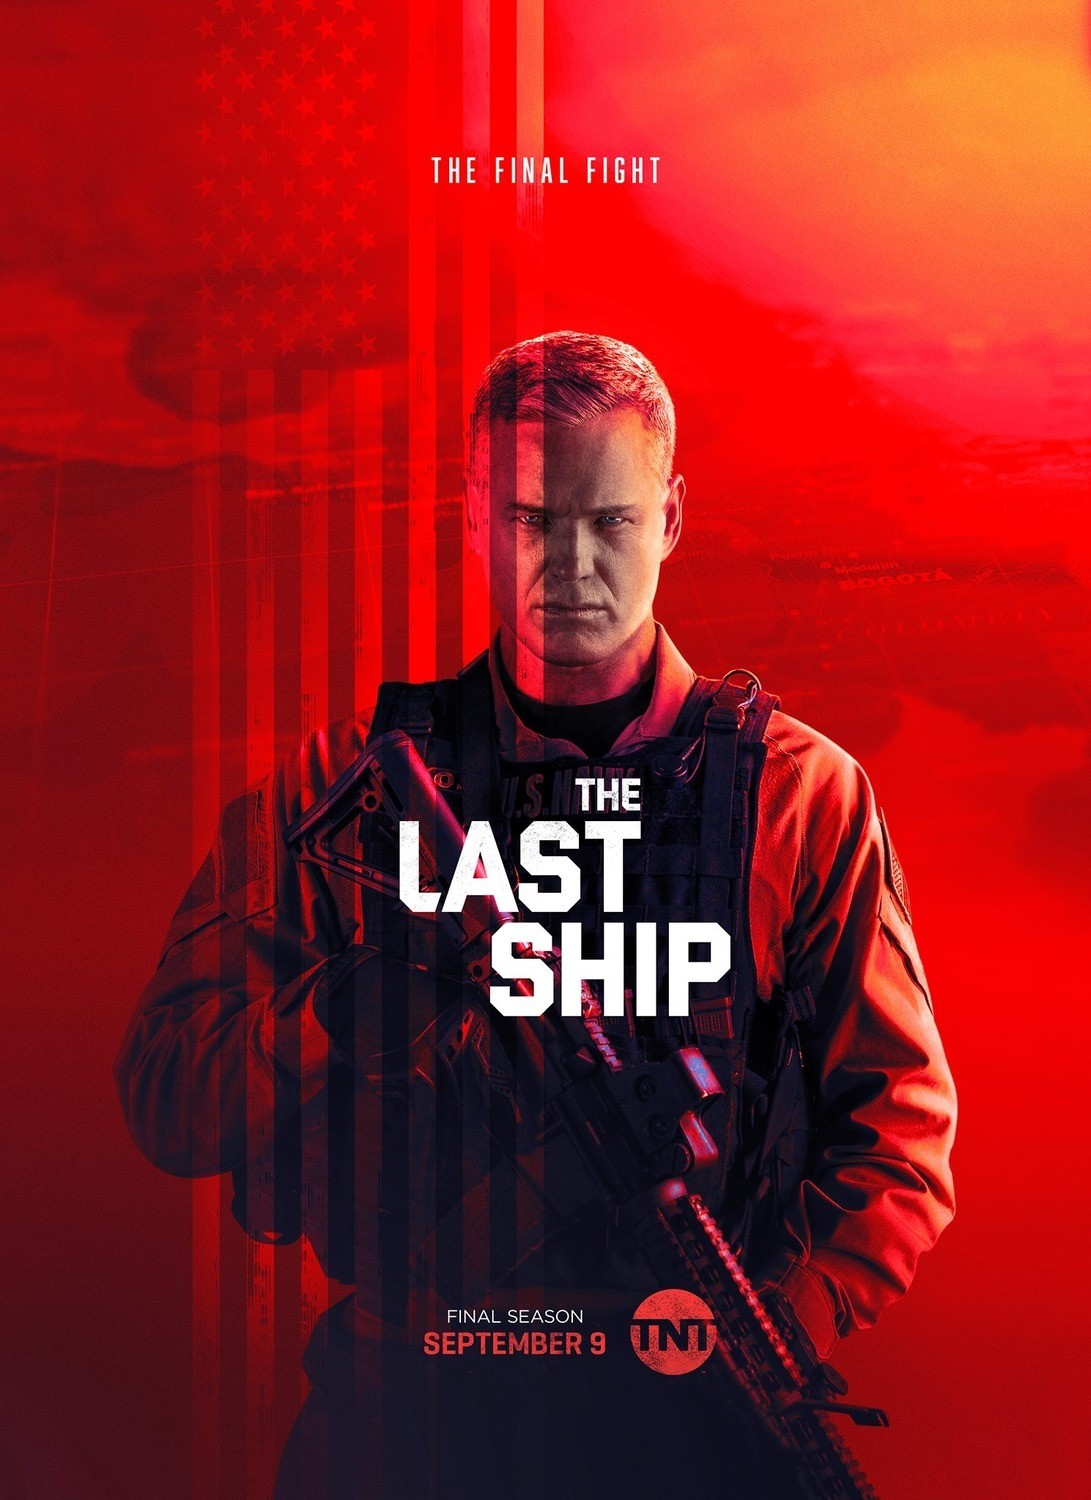 The Last Ship Season 5 末日孤舰 第五季